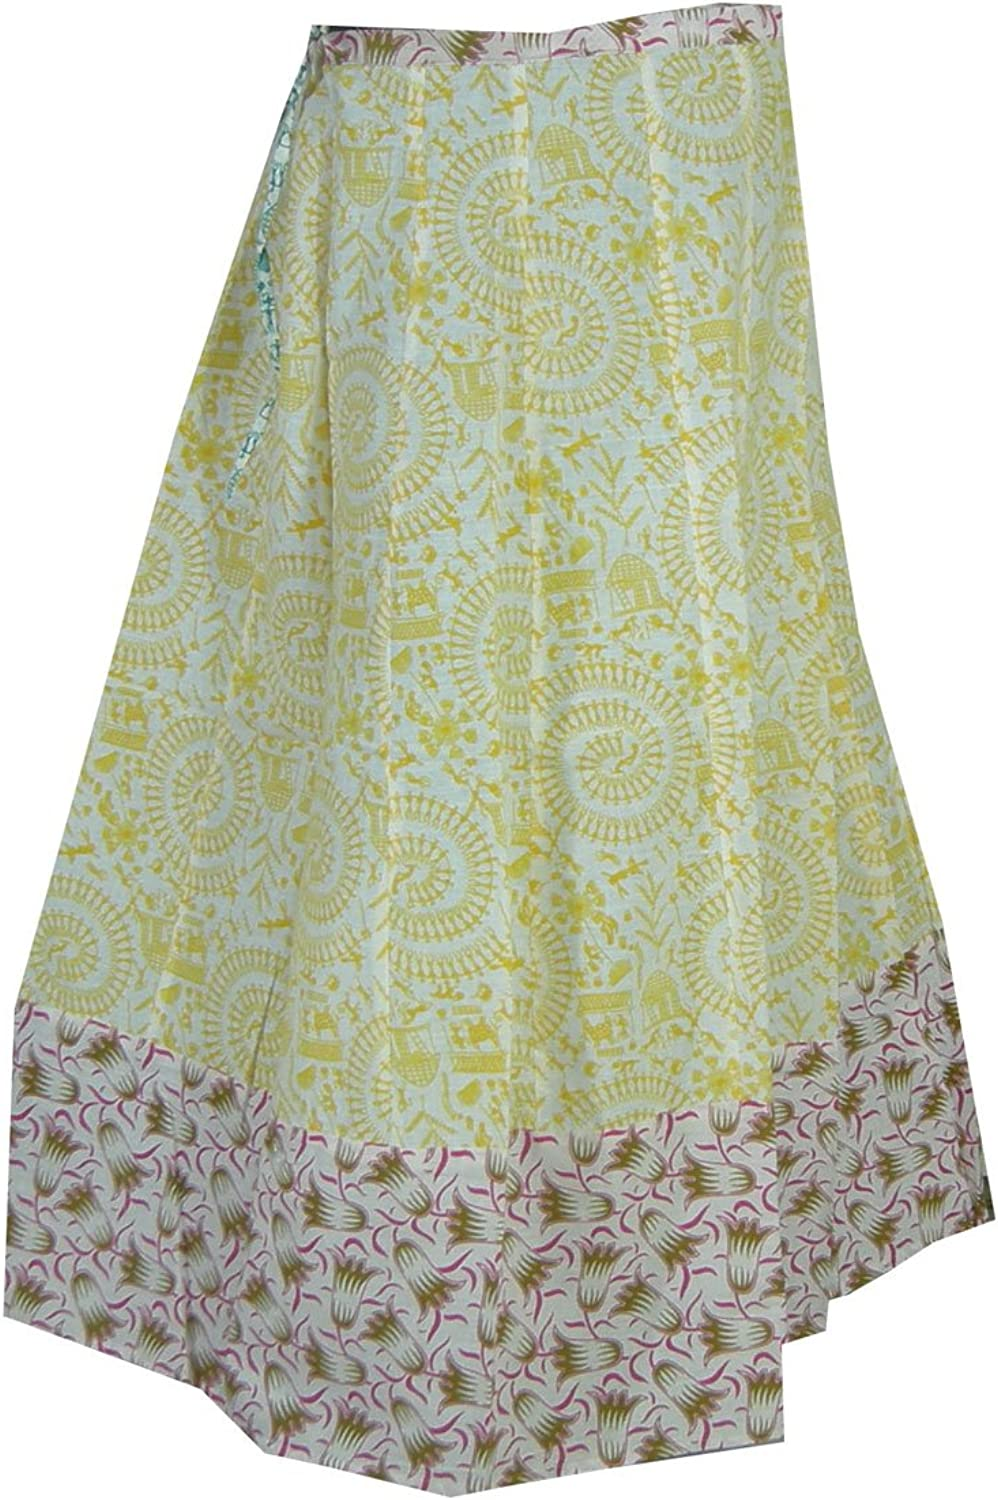 Panini Impex Printed Womens Cotton Skirt India Summer Clothing